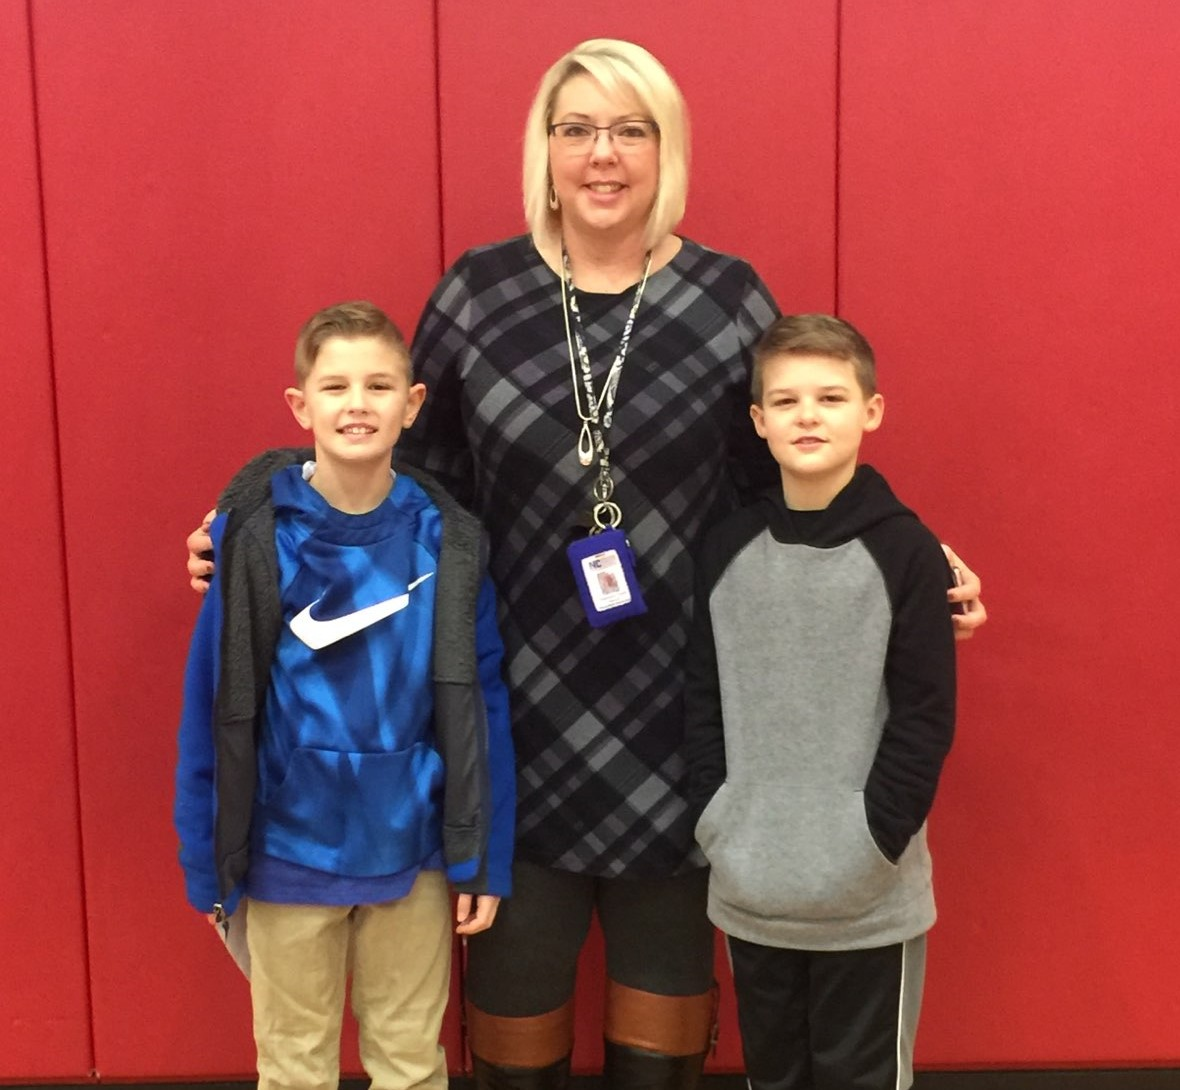 Trey Sparrow BES Spelling Bee Champ with runner up Matt Combs and Principal Stephanie Smith